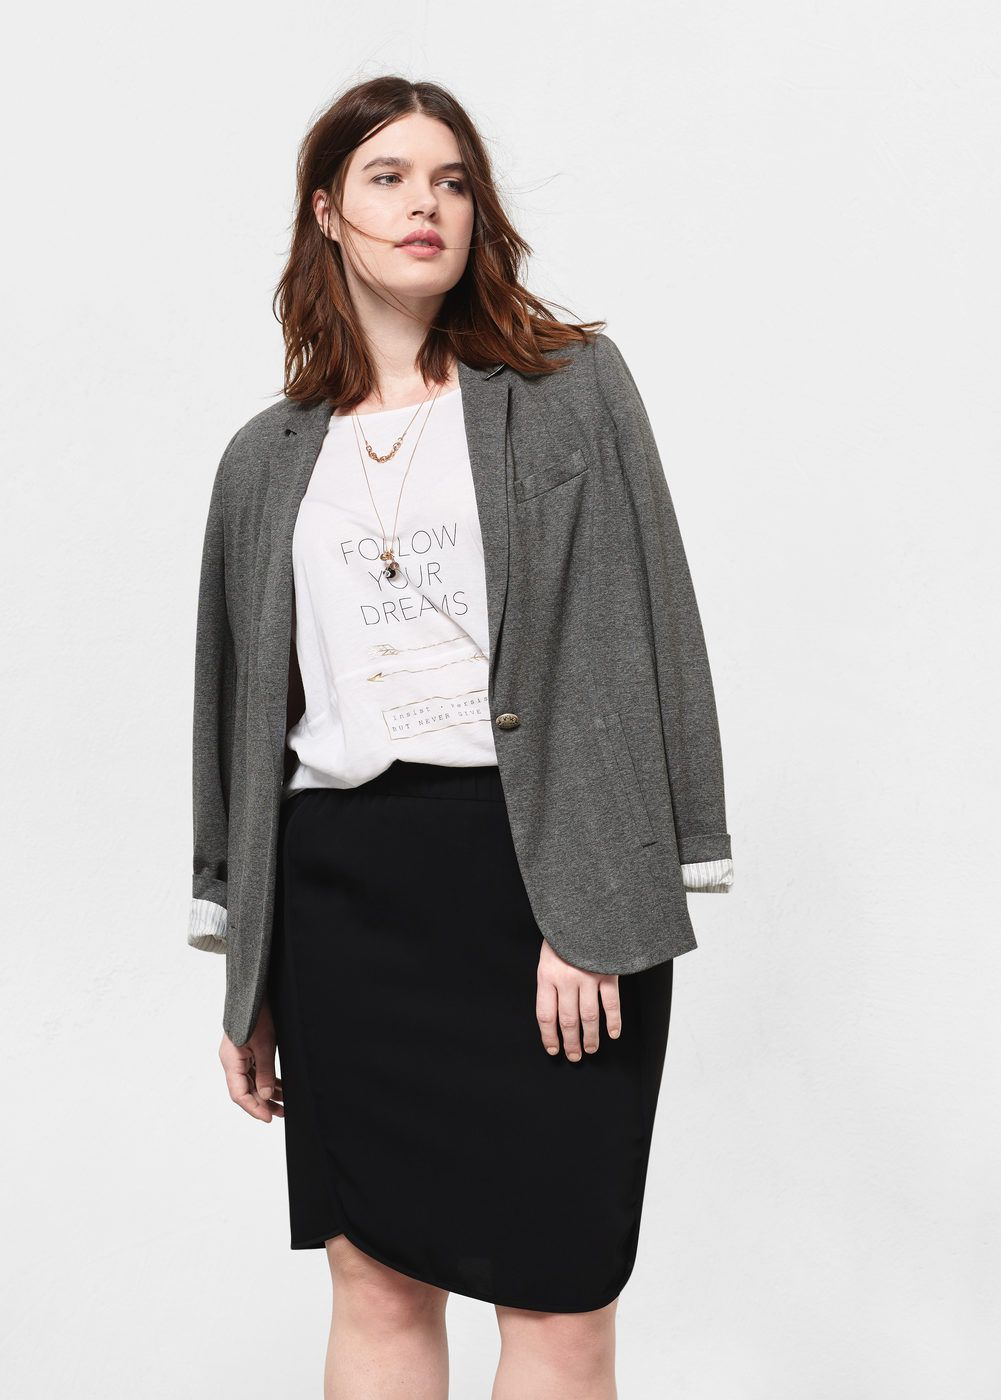 jupe taille fronc e grandes tailles fashion inspiration jupe grande taille taille